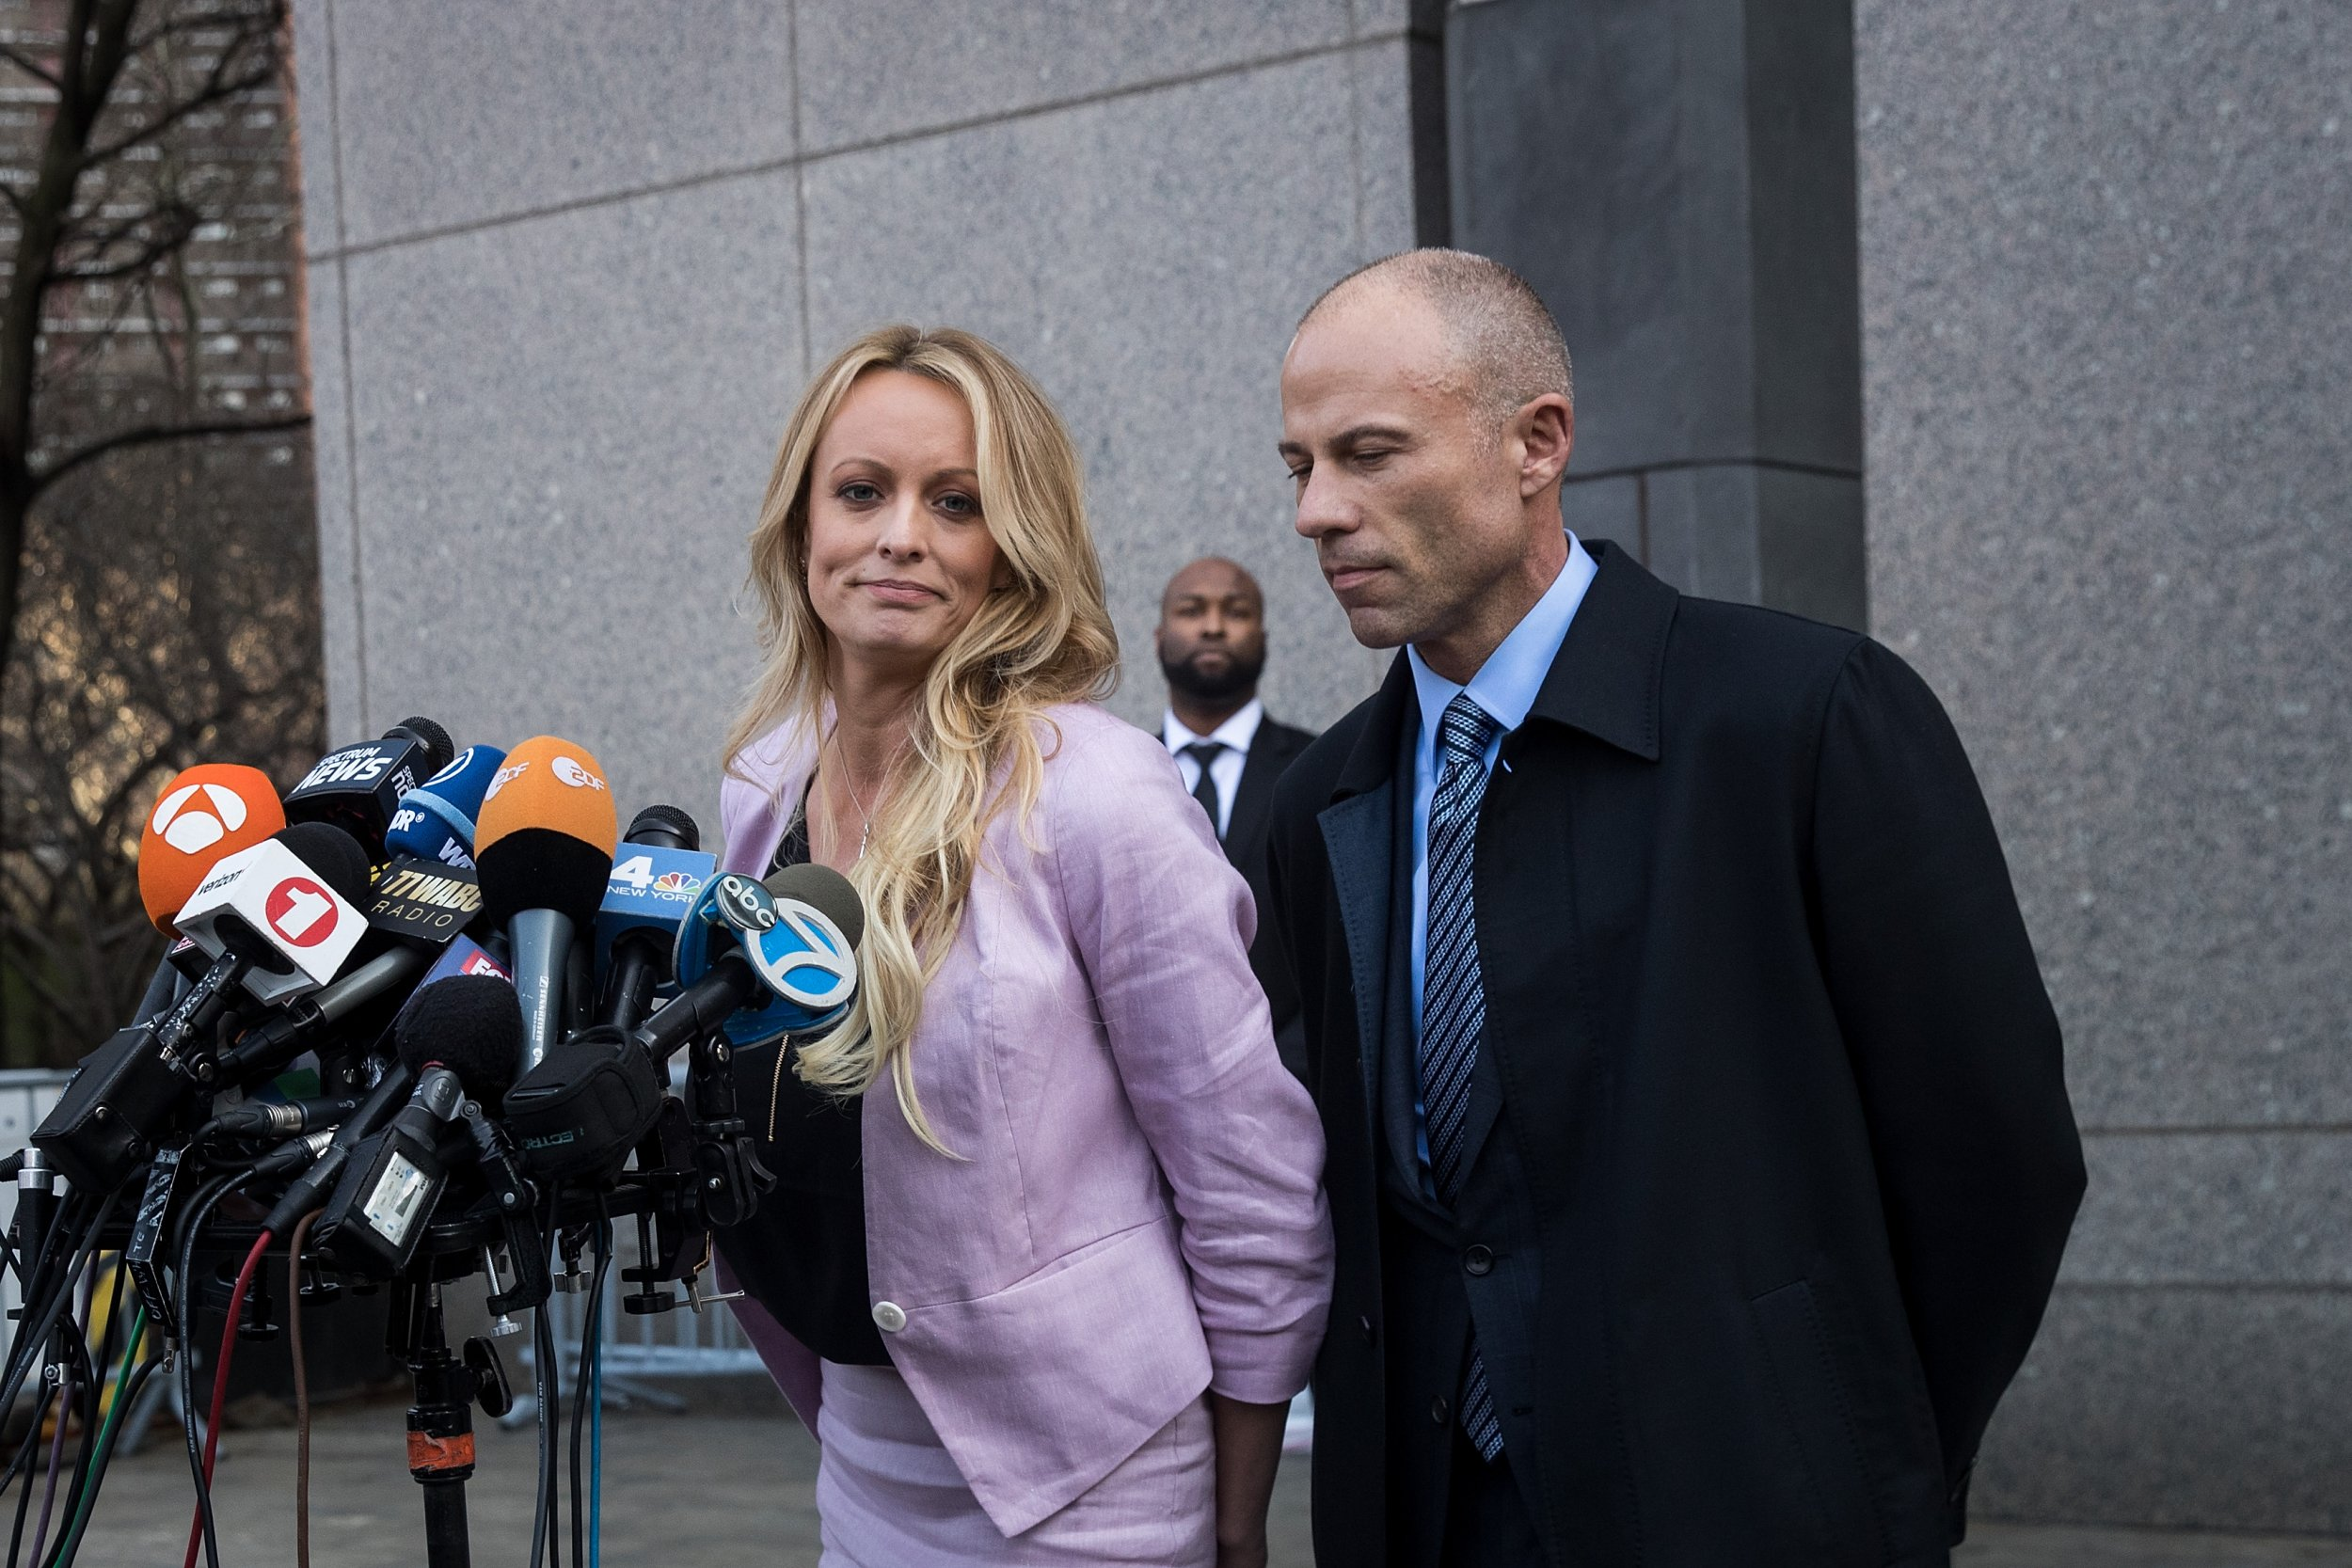 Stormy Daniels' Lawyer warns Trump of Evidence DVD and says Hannity faces 'embarassing' revelations